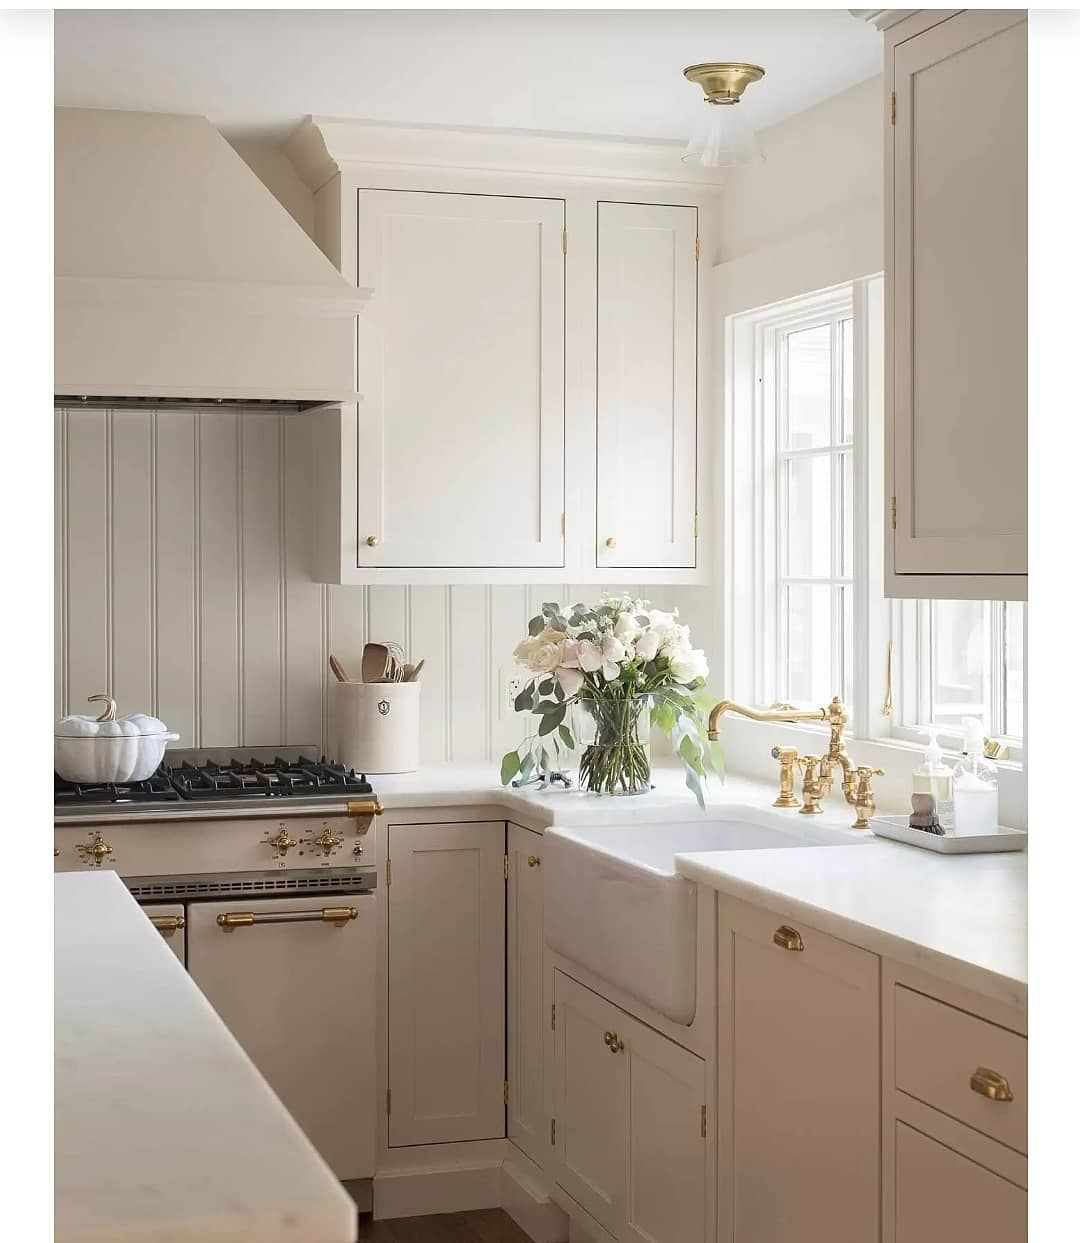 Ali Henrie Design On Instagram Are Cream Colored Kitchens The New White Kitchens Working On A Creamy White Kitchen Right Now And Th In 2020 Cream Kitchen Cabinets New Kitchen Cabinets